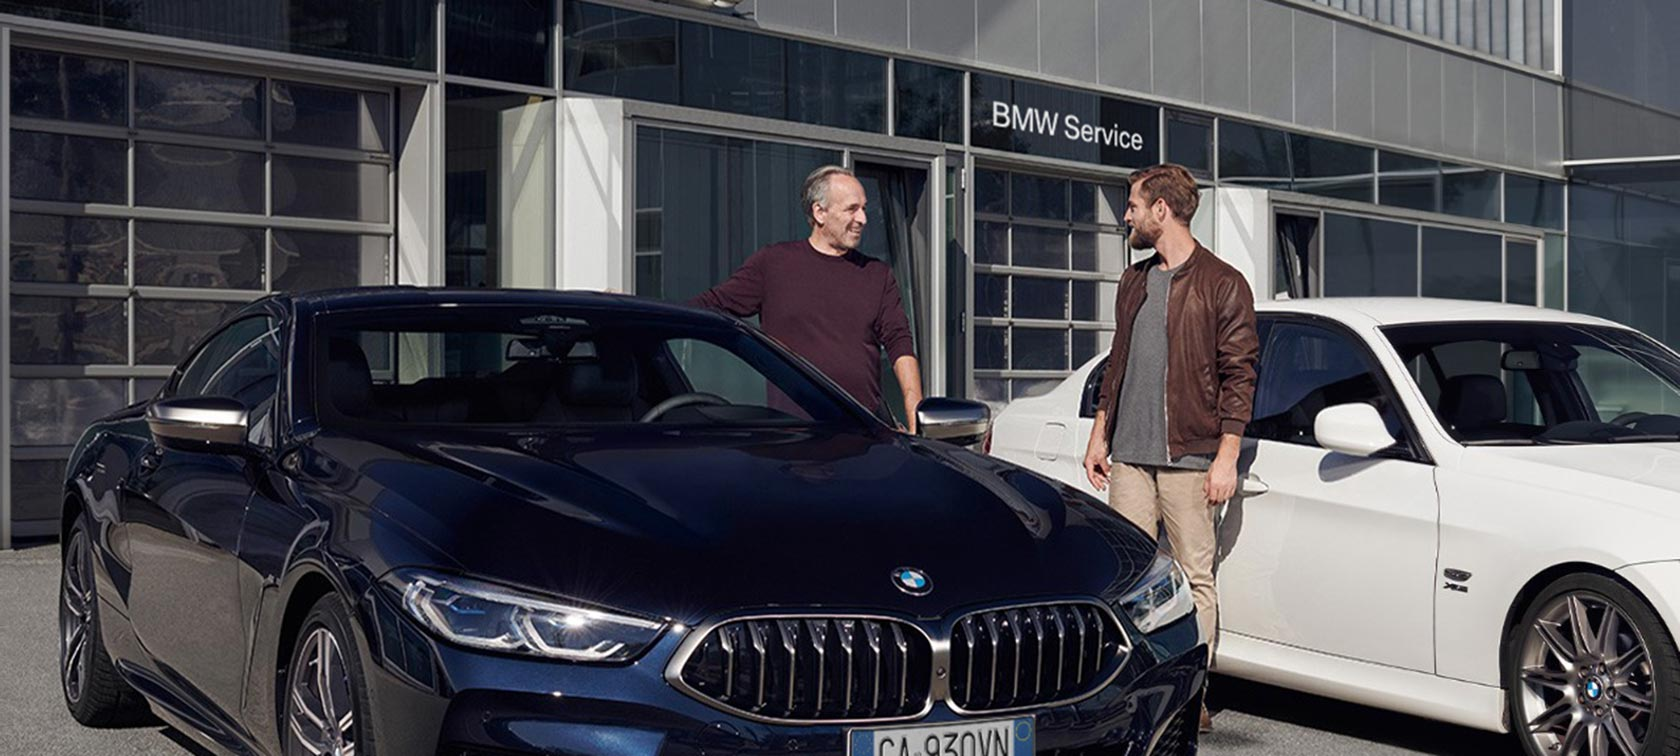 BMW aftersales service update